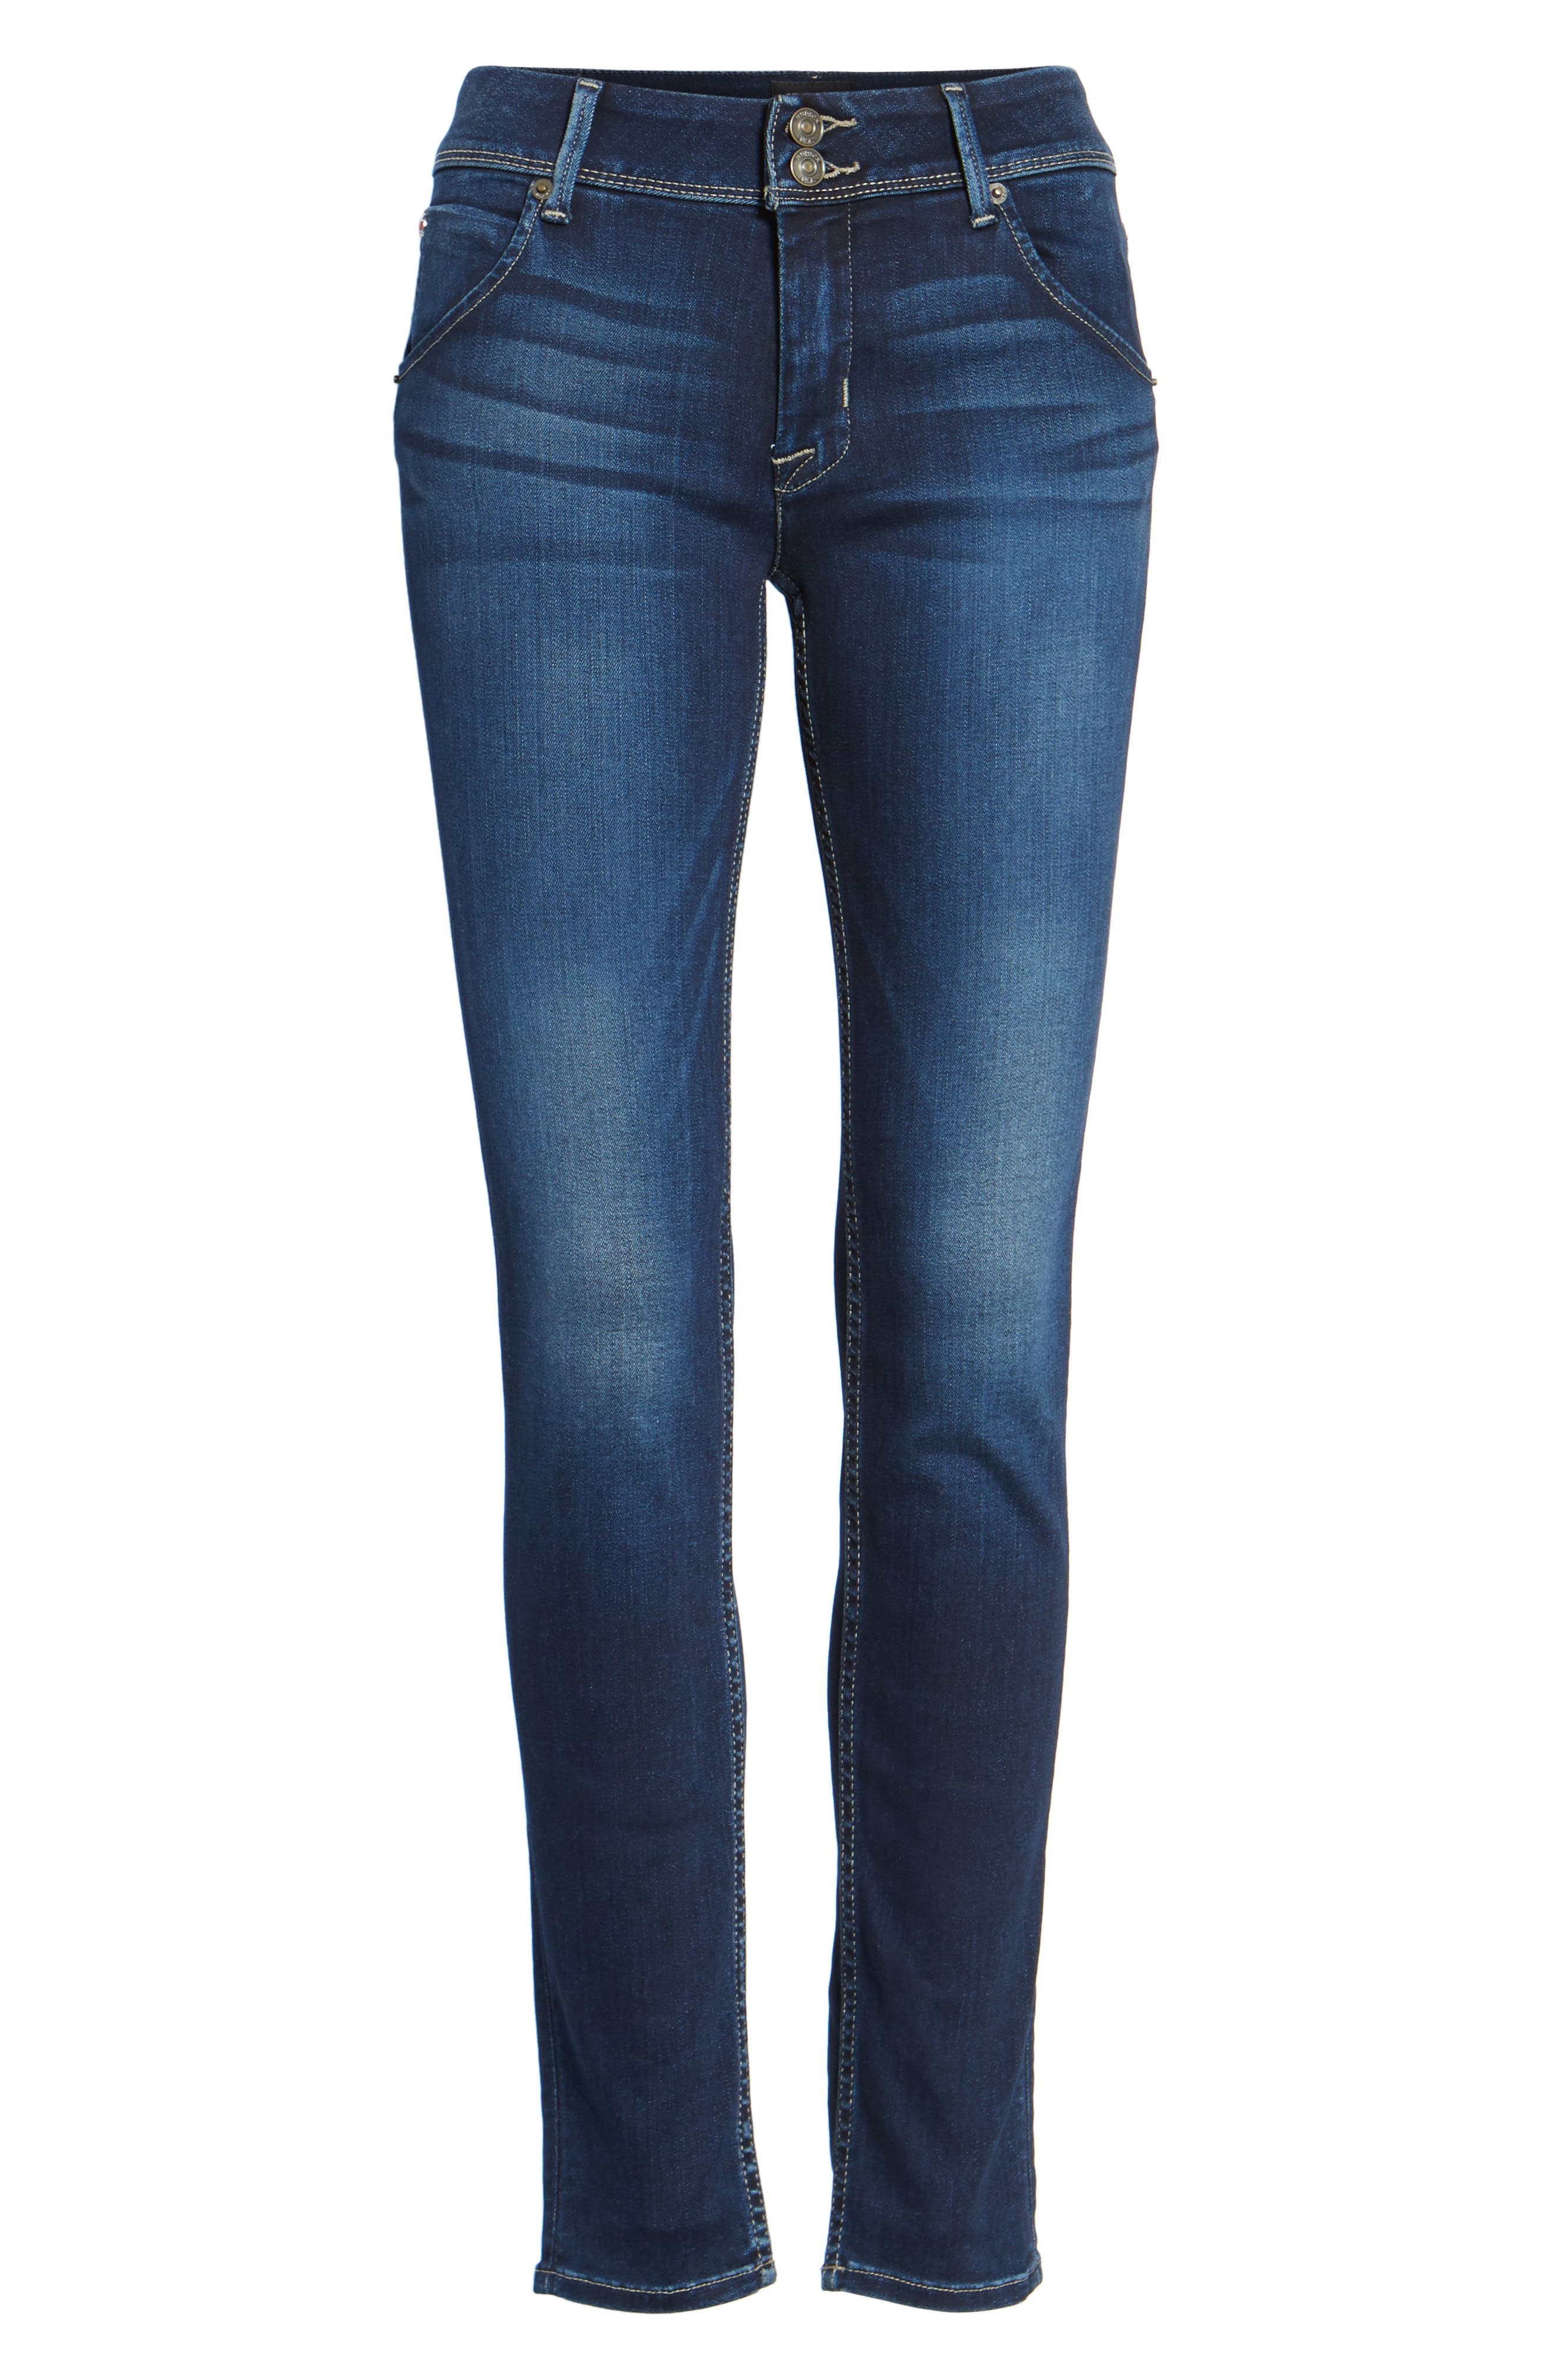 HUDSON JEANS 'Elysian - Collin' Mid Rise Skinny Jeans, Main, color, 402